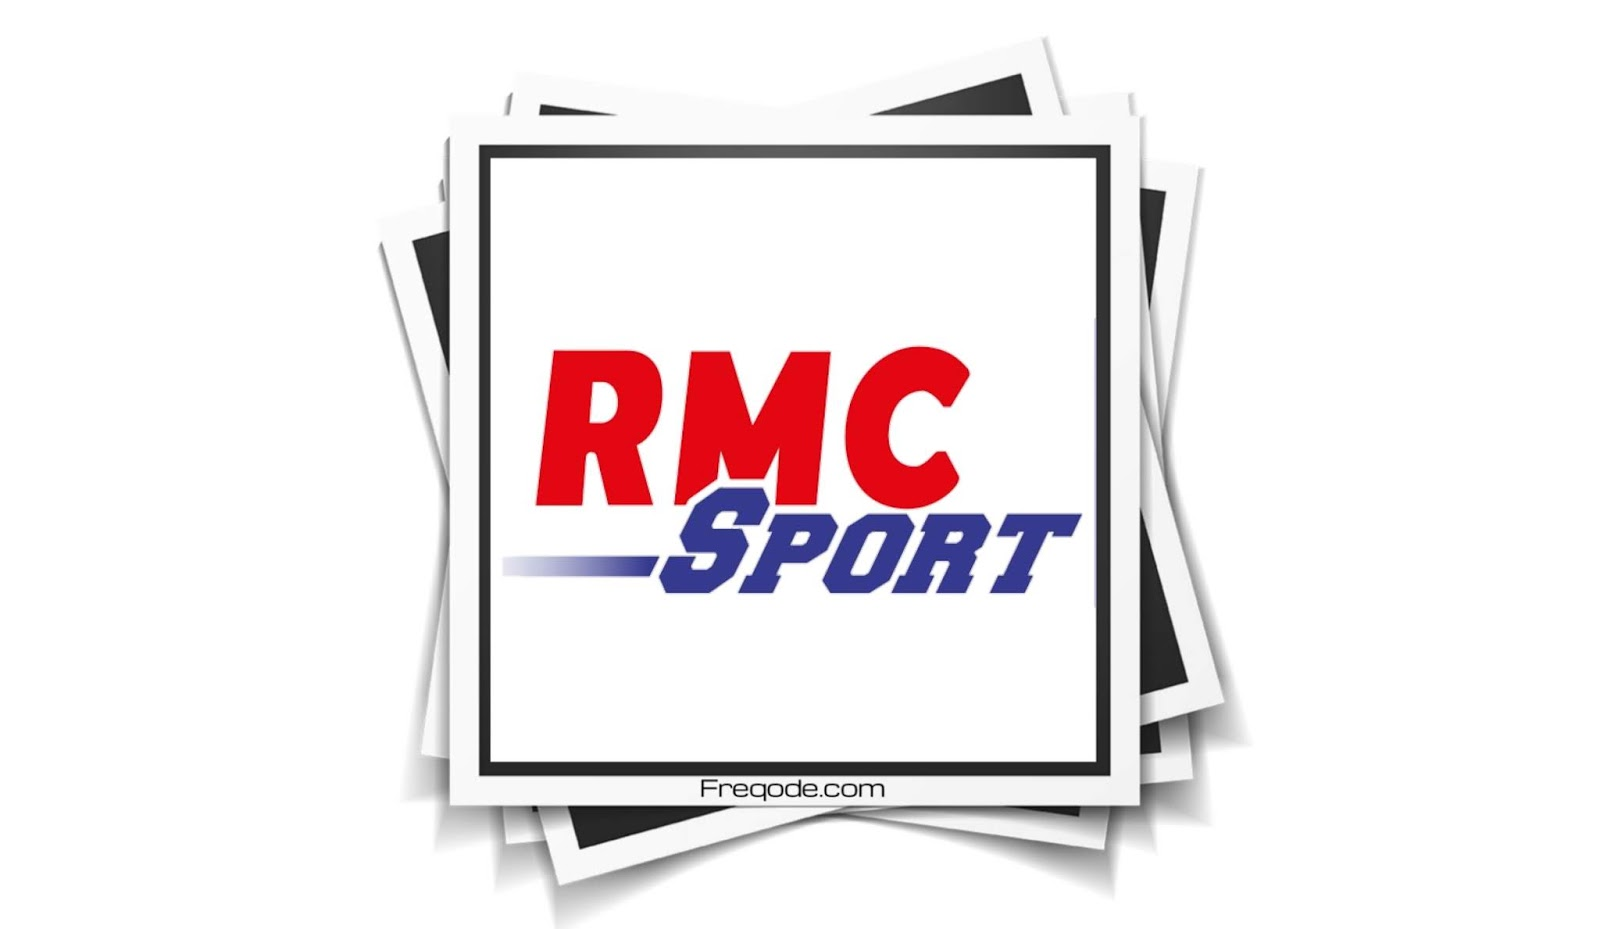 Rmc Sport All Channels All Frequencies 2020 Freqode Com